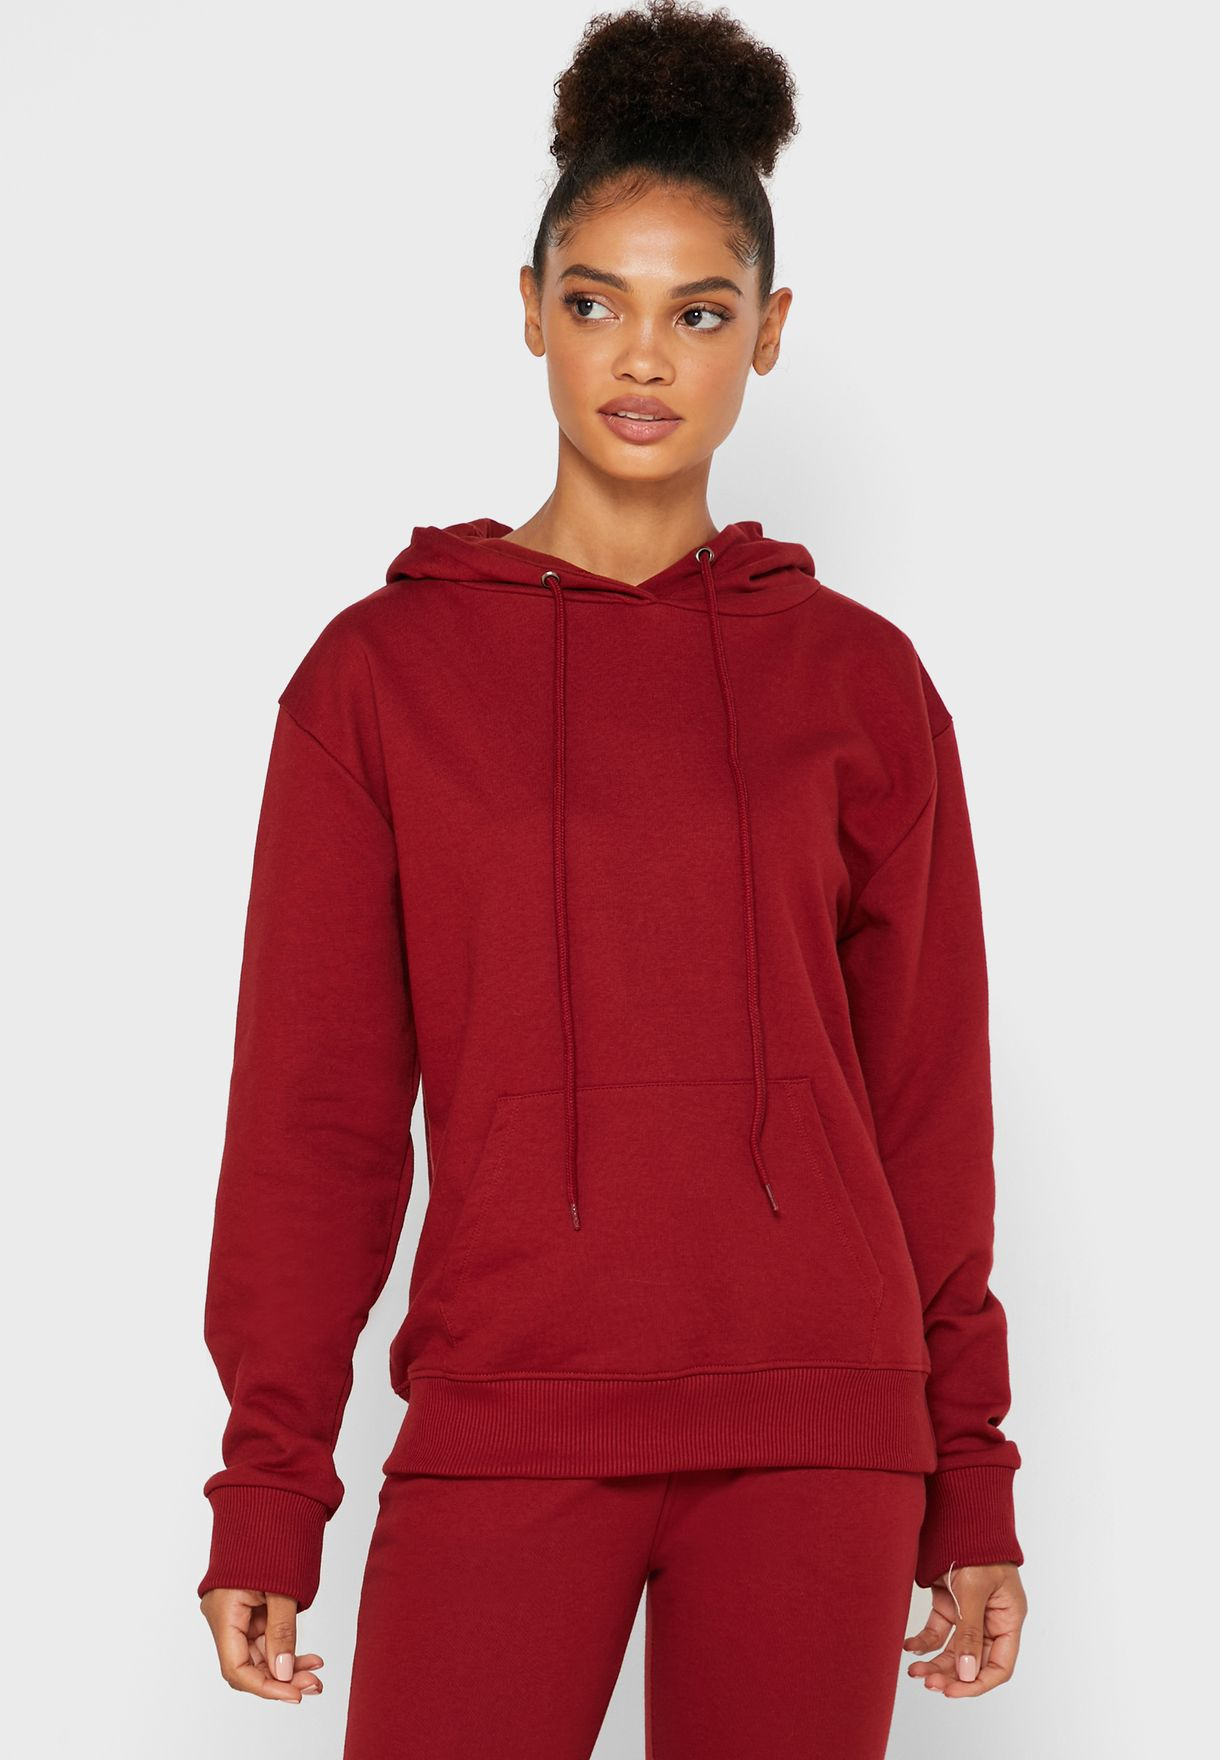 Hoodie with pocket Jogger Set